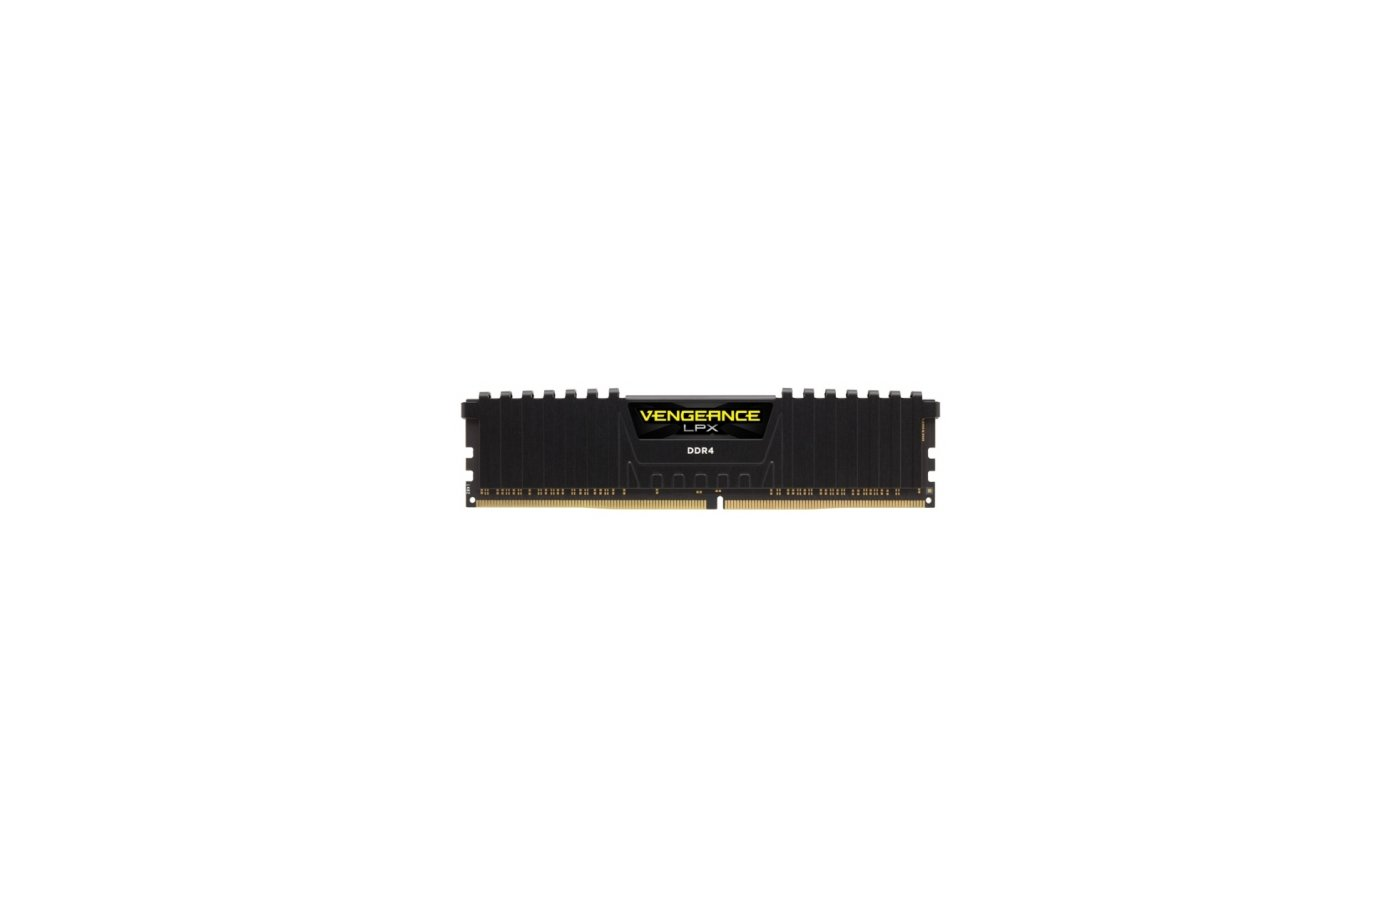 Оперативная память Corsair CMK4GX4M1A2400C16 RTL PC4-19200 DDR4 4Gb 2400MHz CL16 DIMM